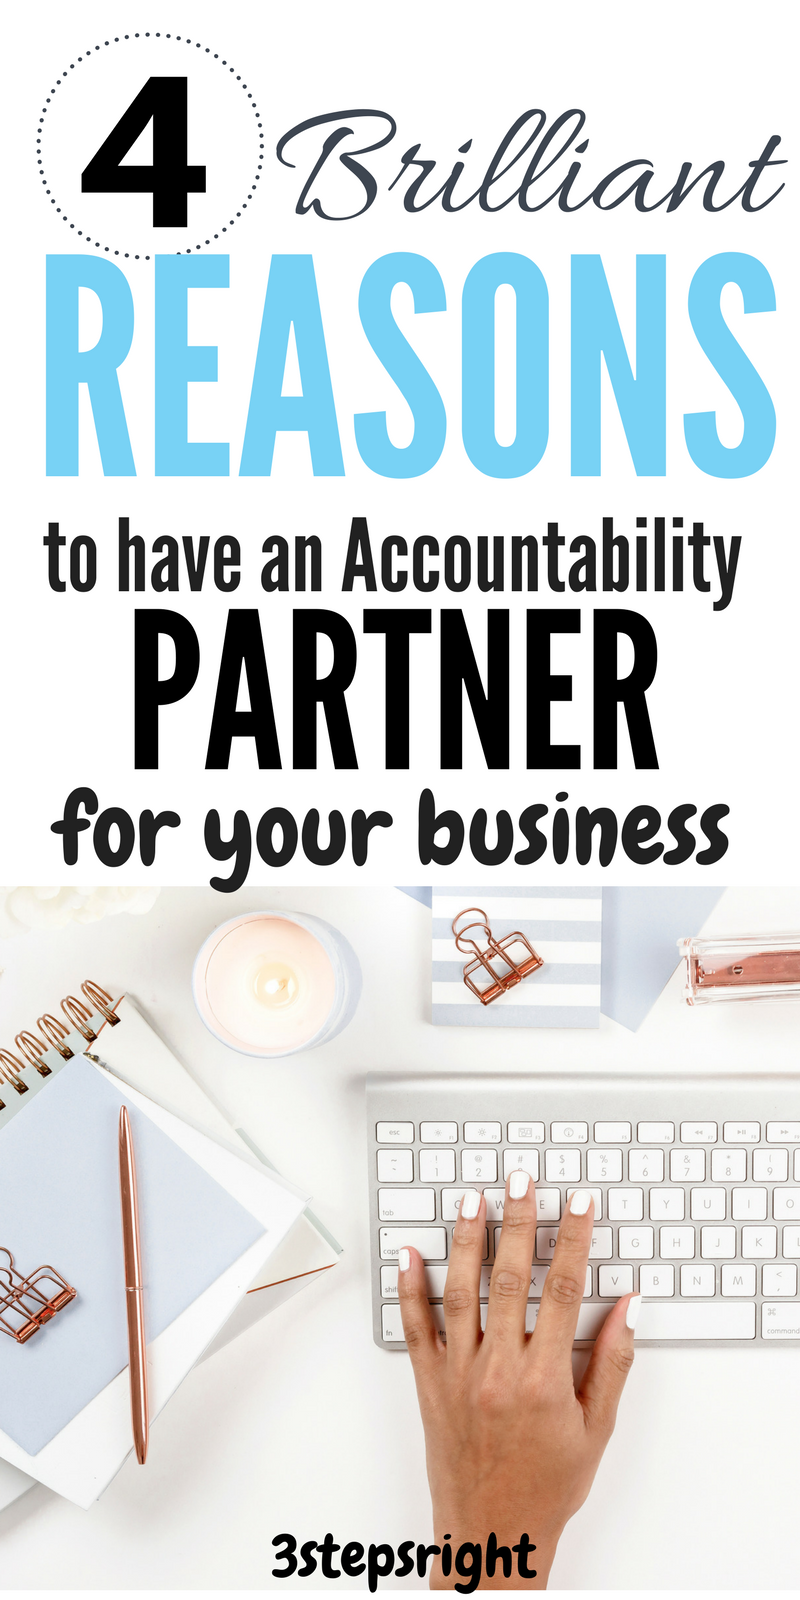 12. 4 reasons to have an accountability partner for your business.png